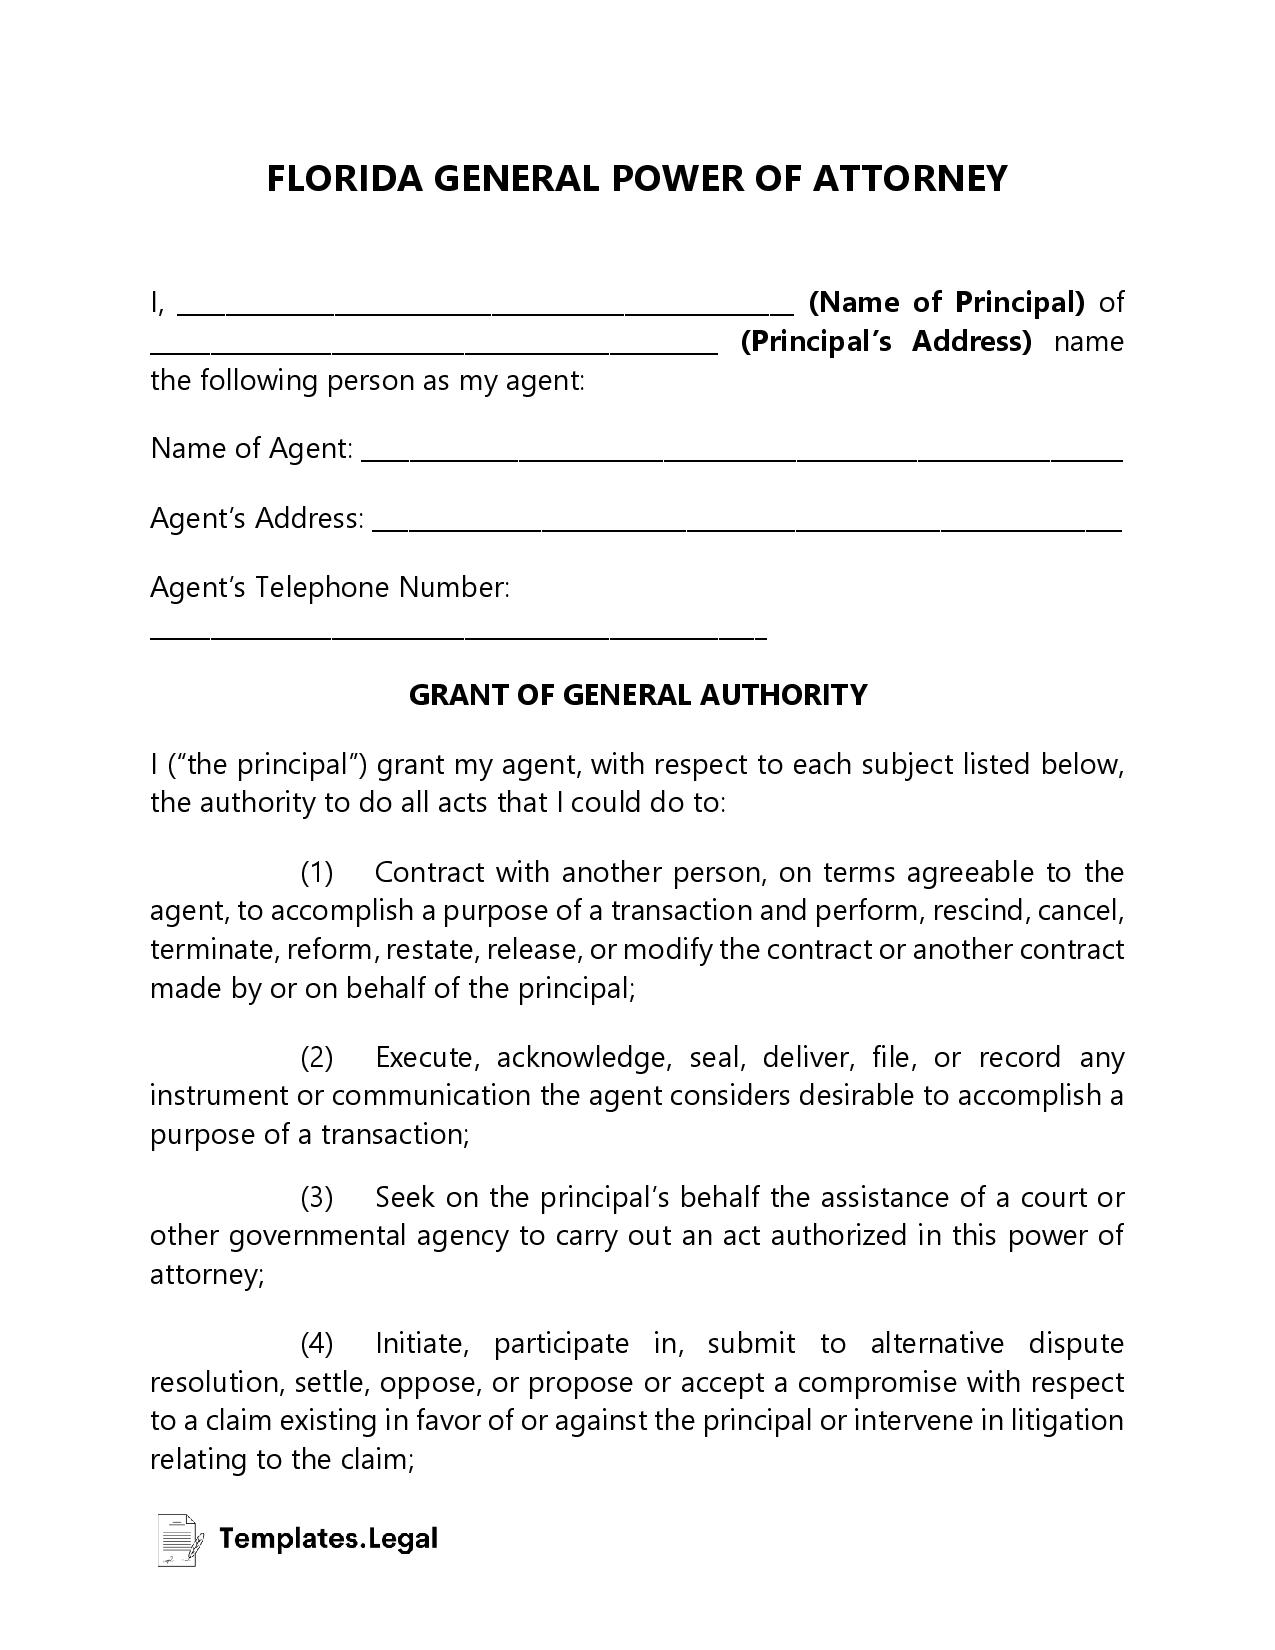 Florida General Power of Attorney - Templates.Legal